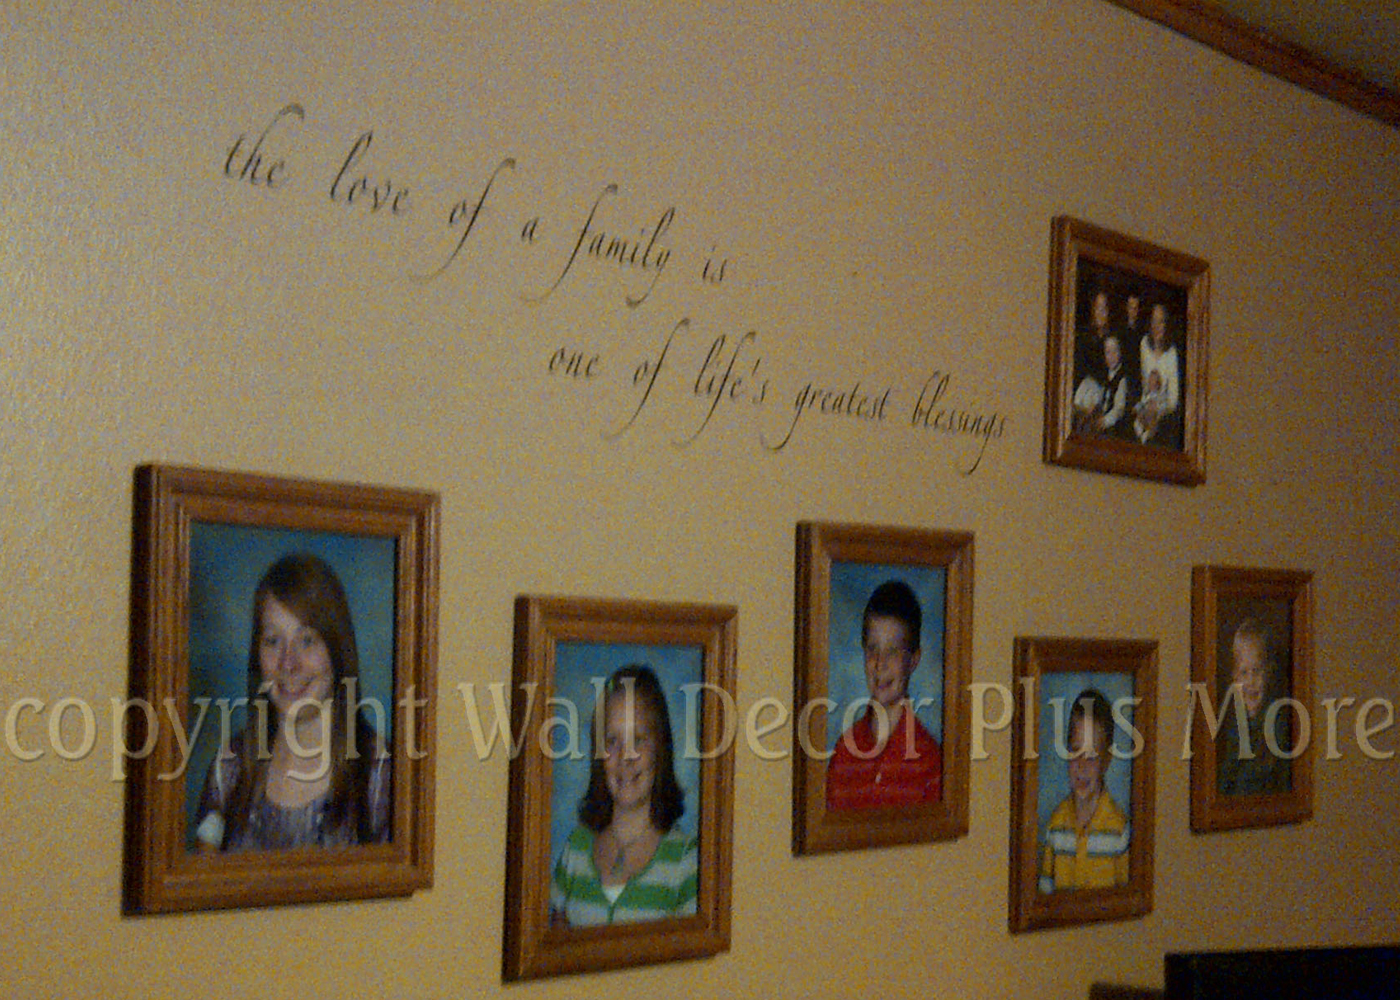 love-of-a-family-wall-decal-quote.jpg